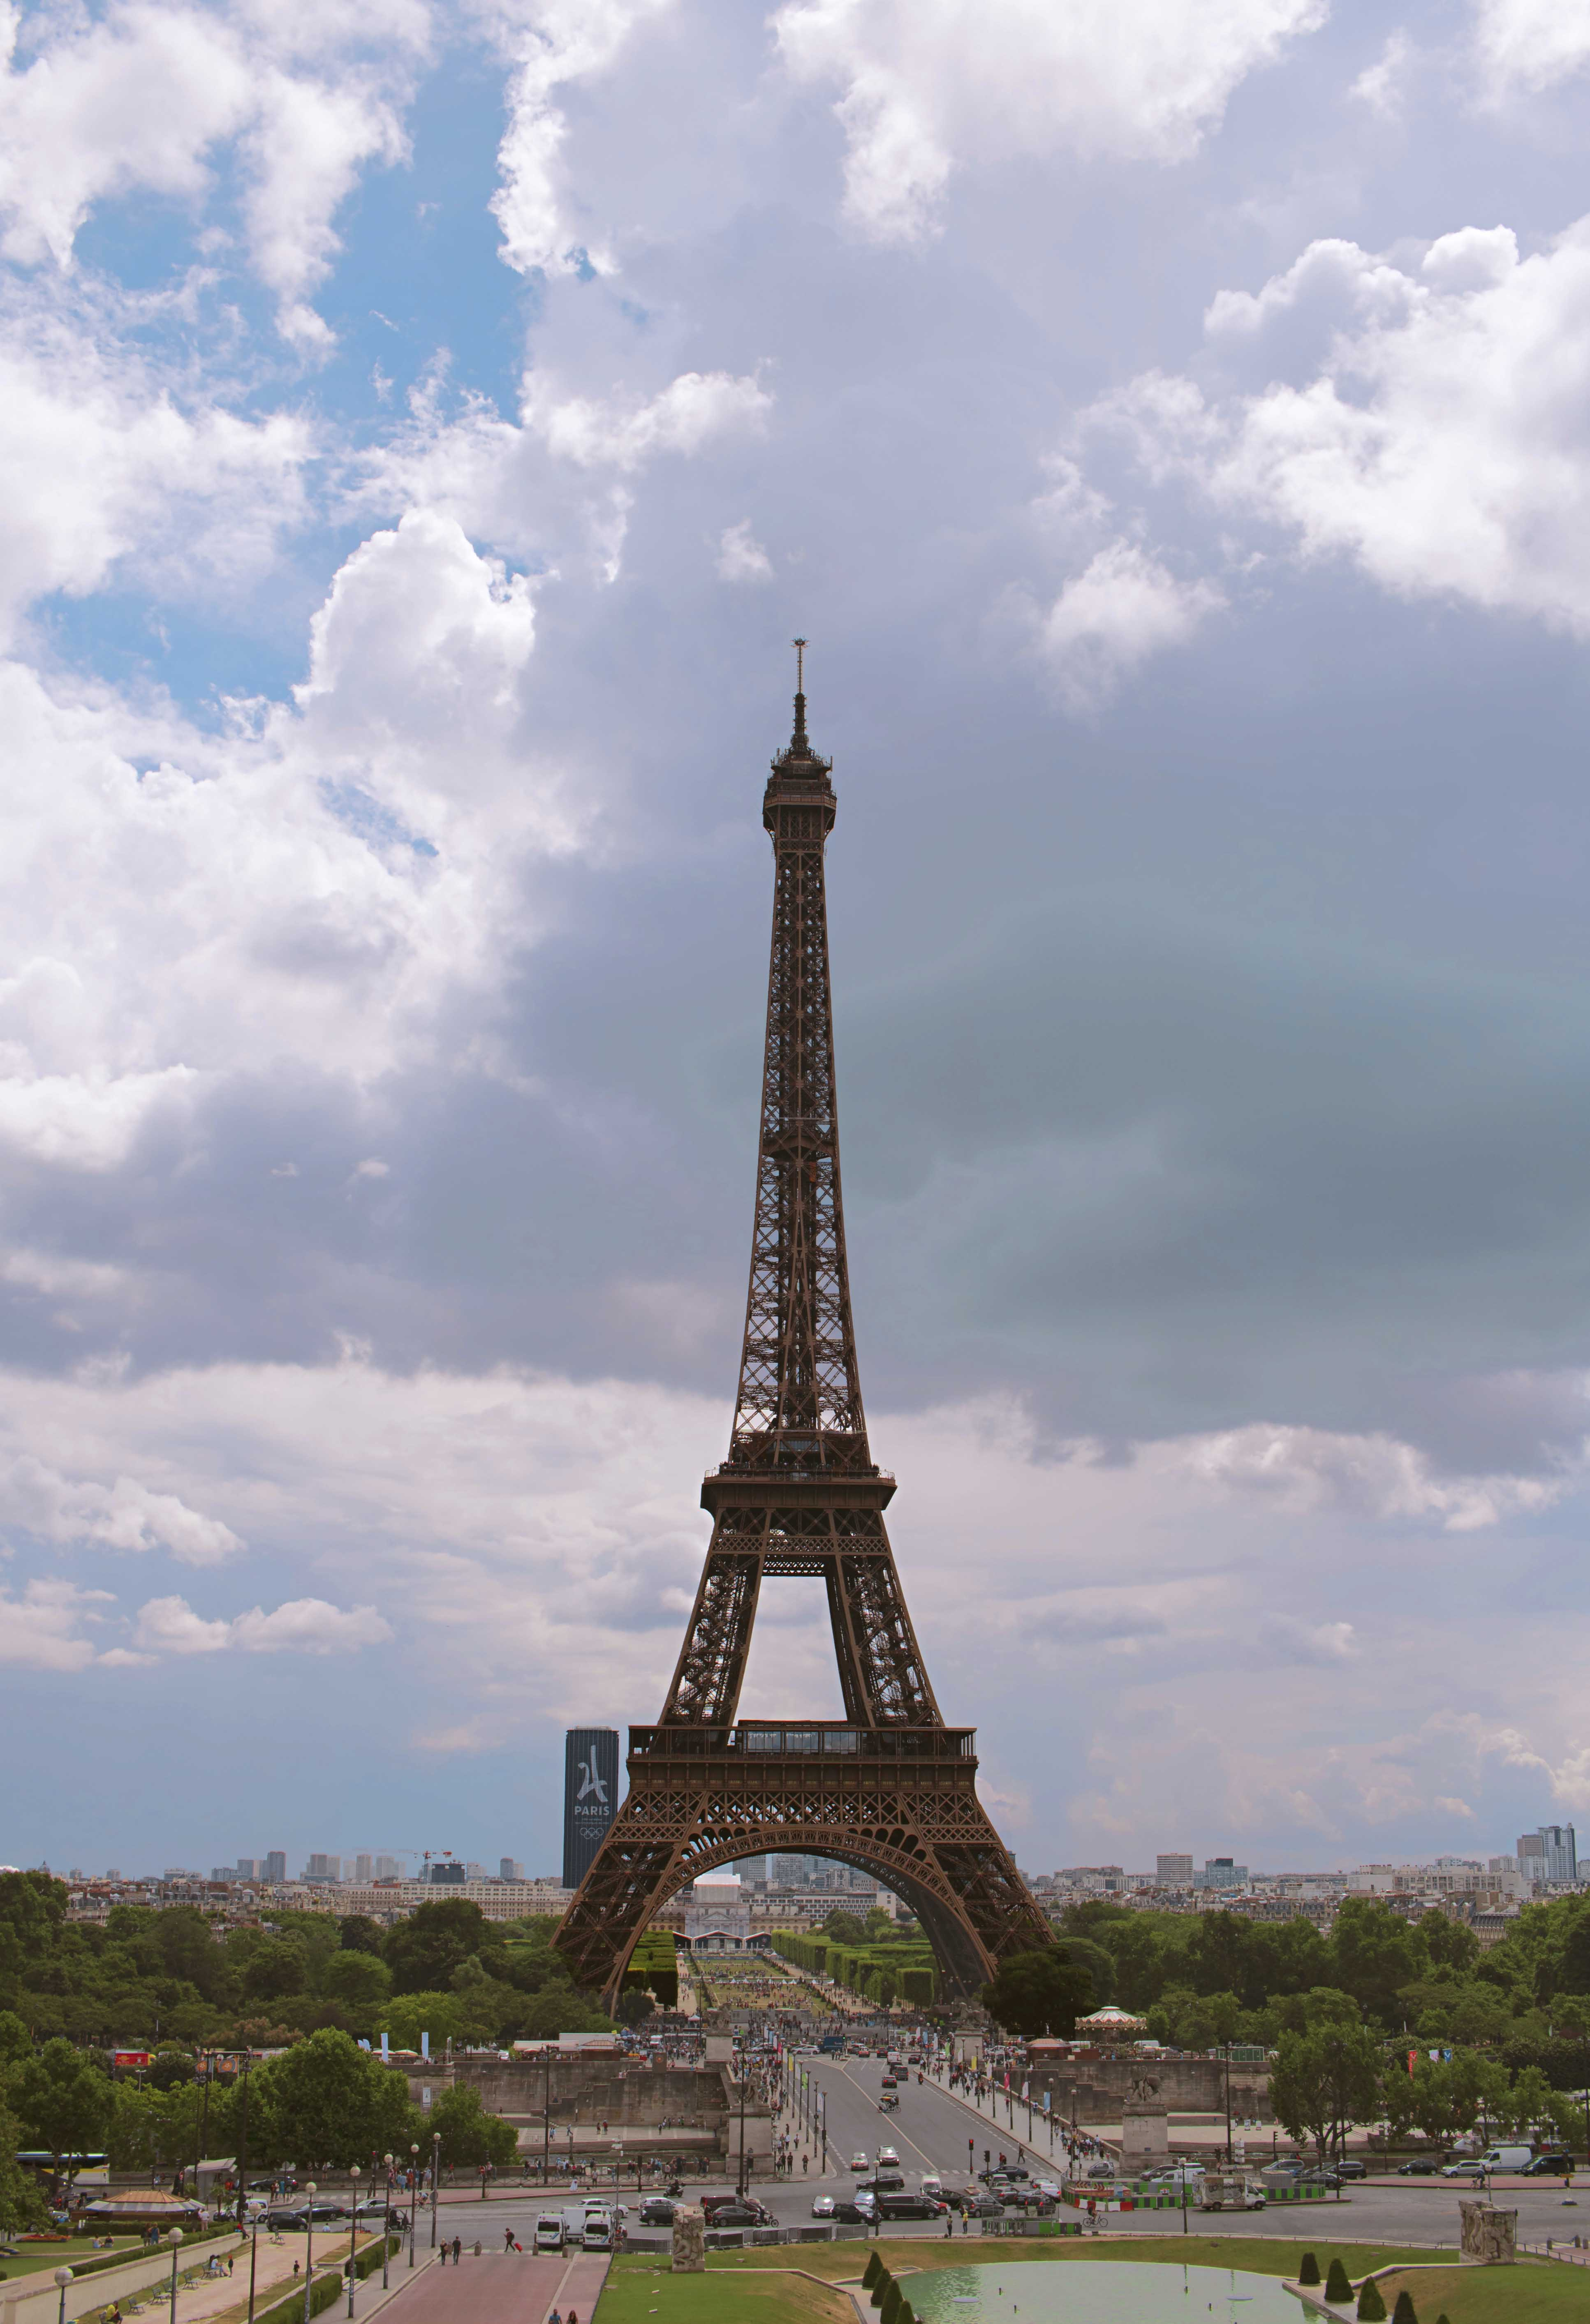 The Eiffel Tower Wide Angle Photography